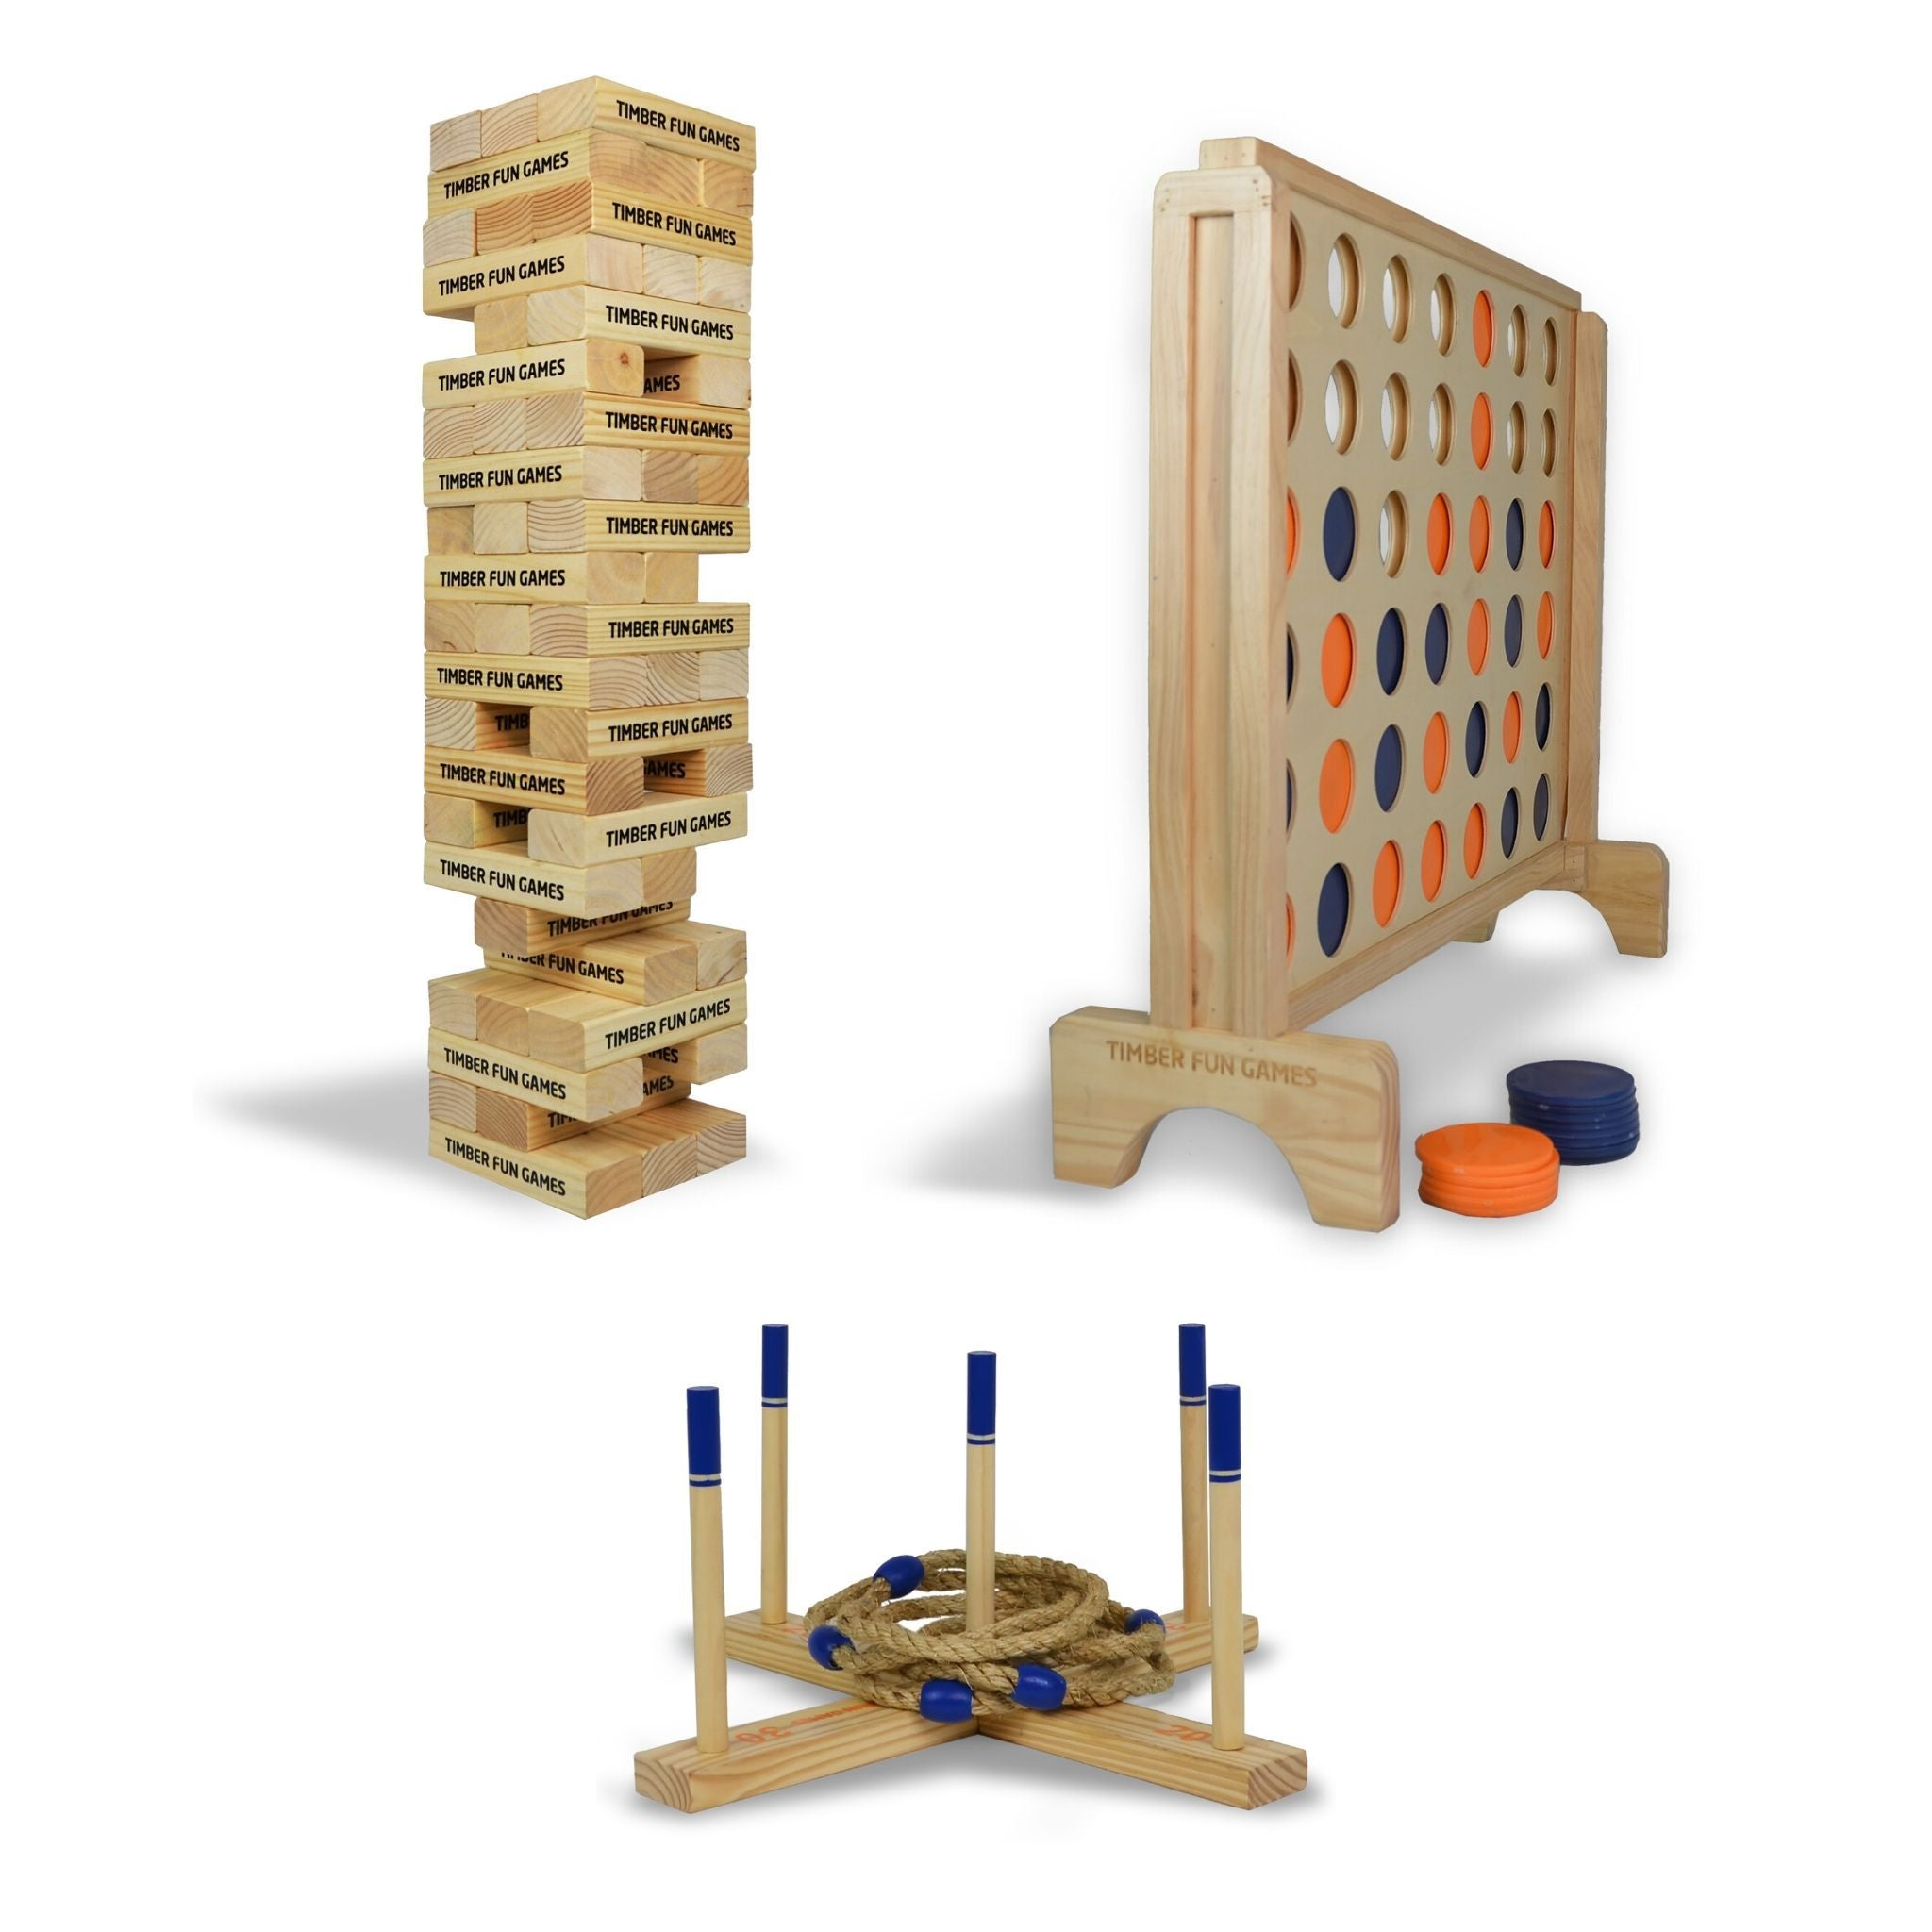 Giant Jenga Tumble Tower, Giant Connect 4 4 In A row, Giant Ring Toss Quoits Package